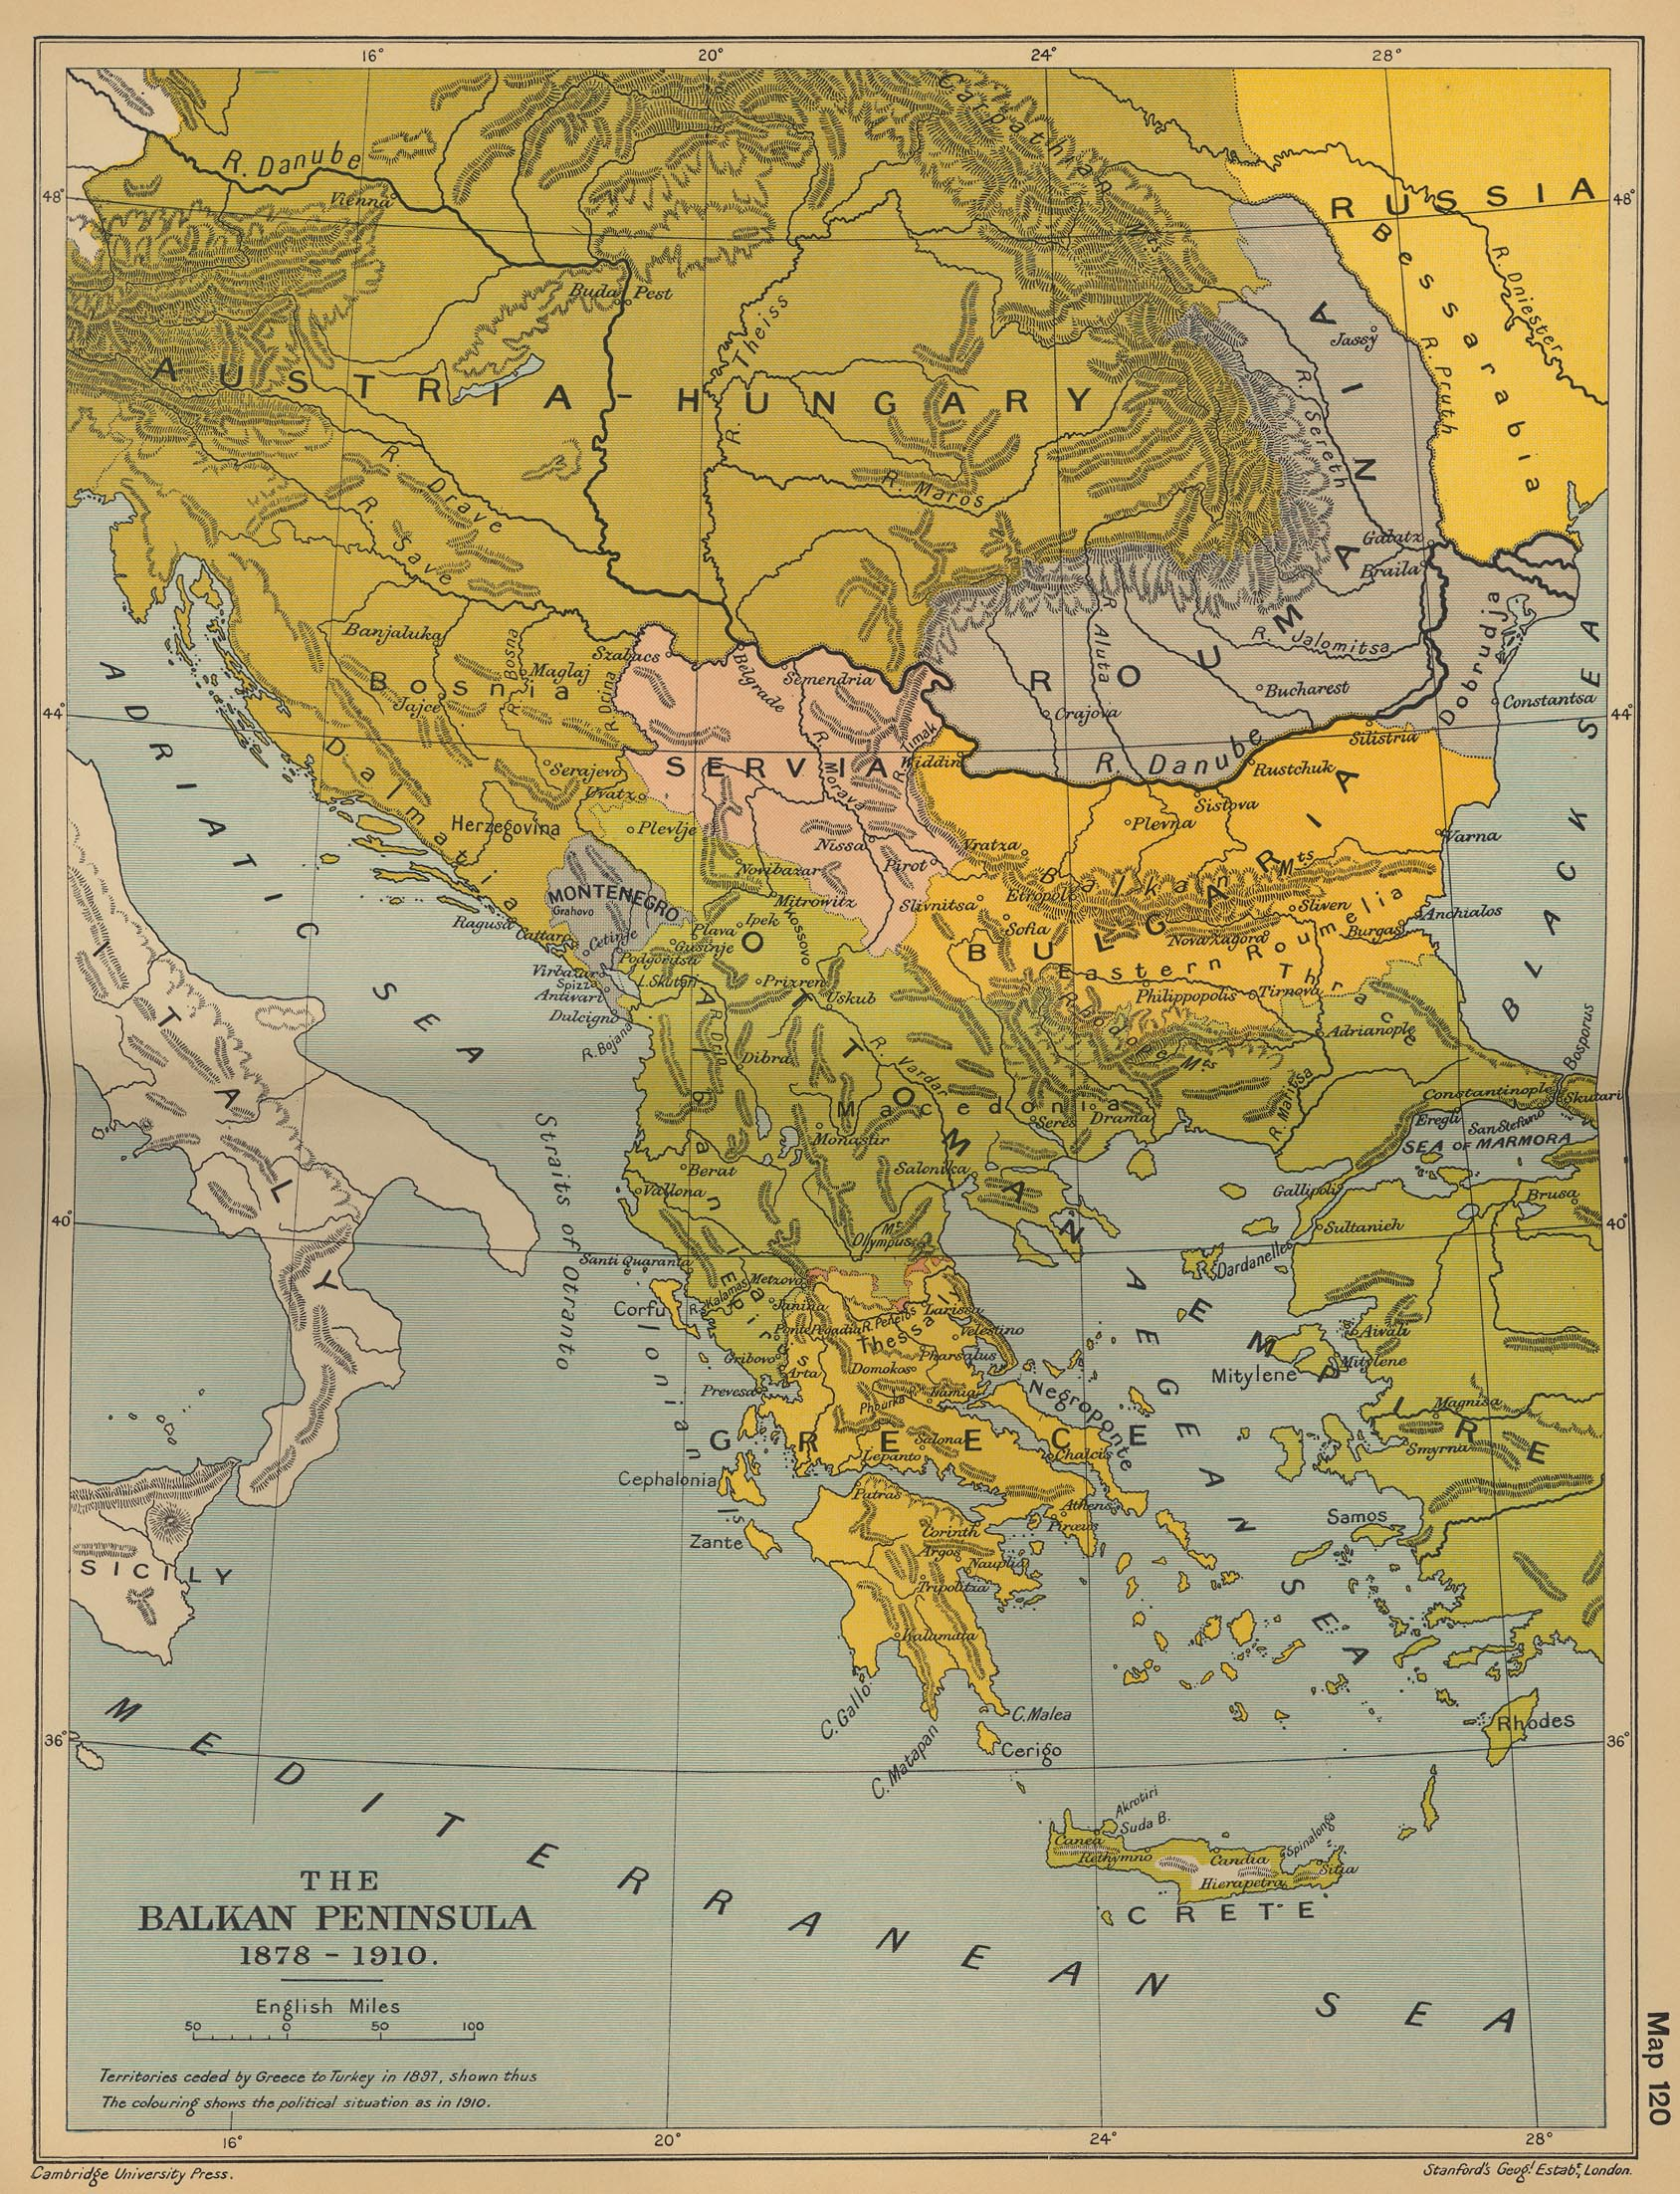 Map of the Balkan Peninsula 1878-1910